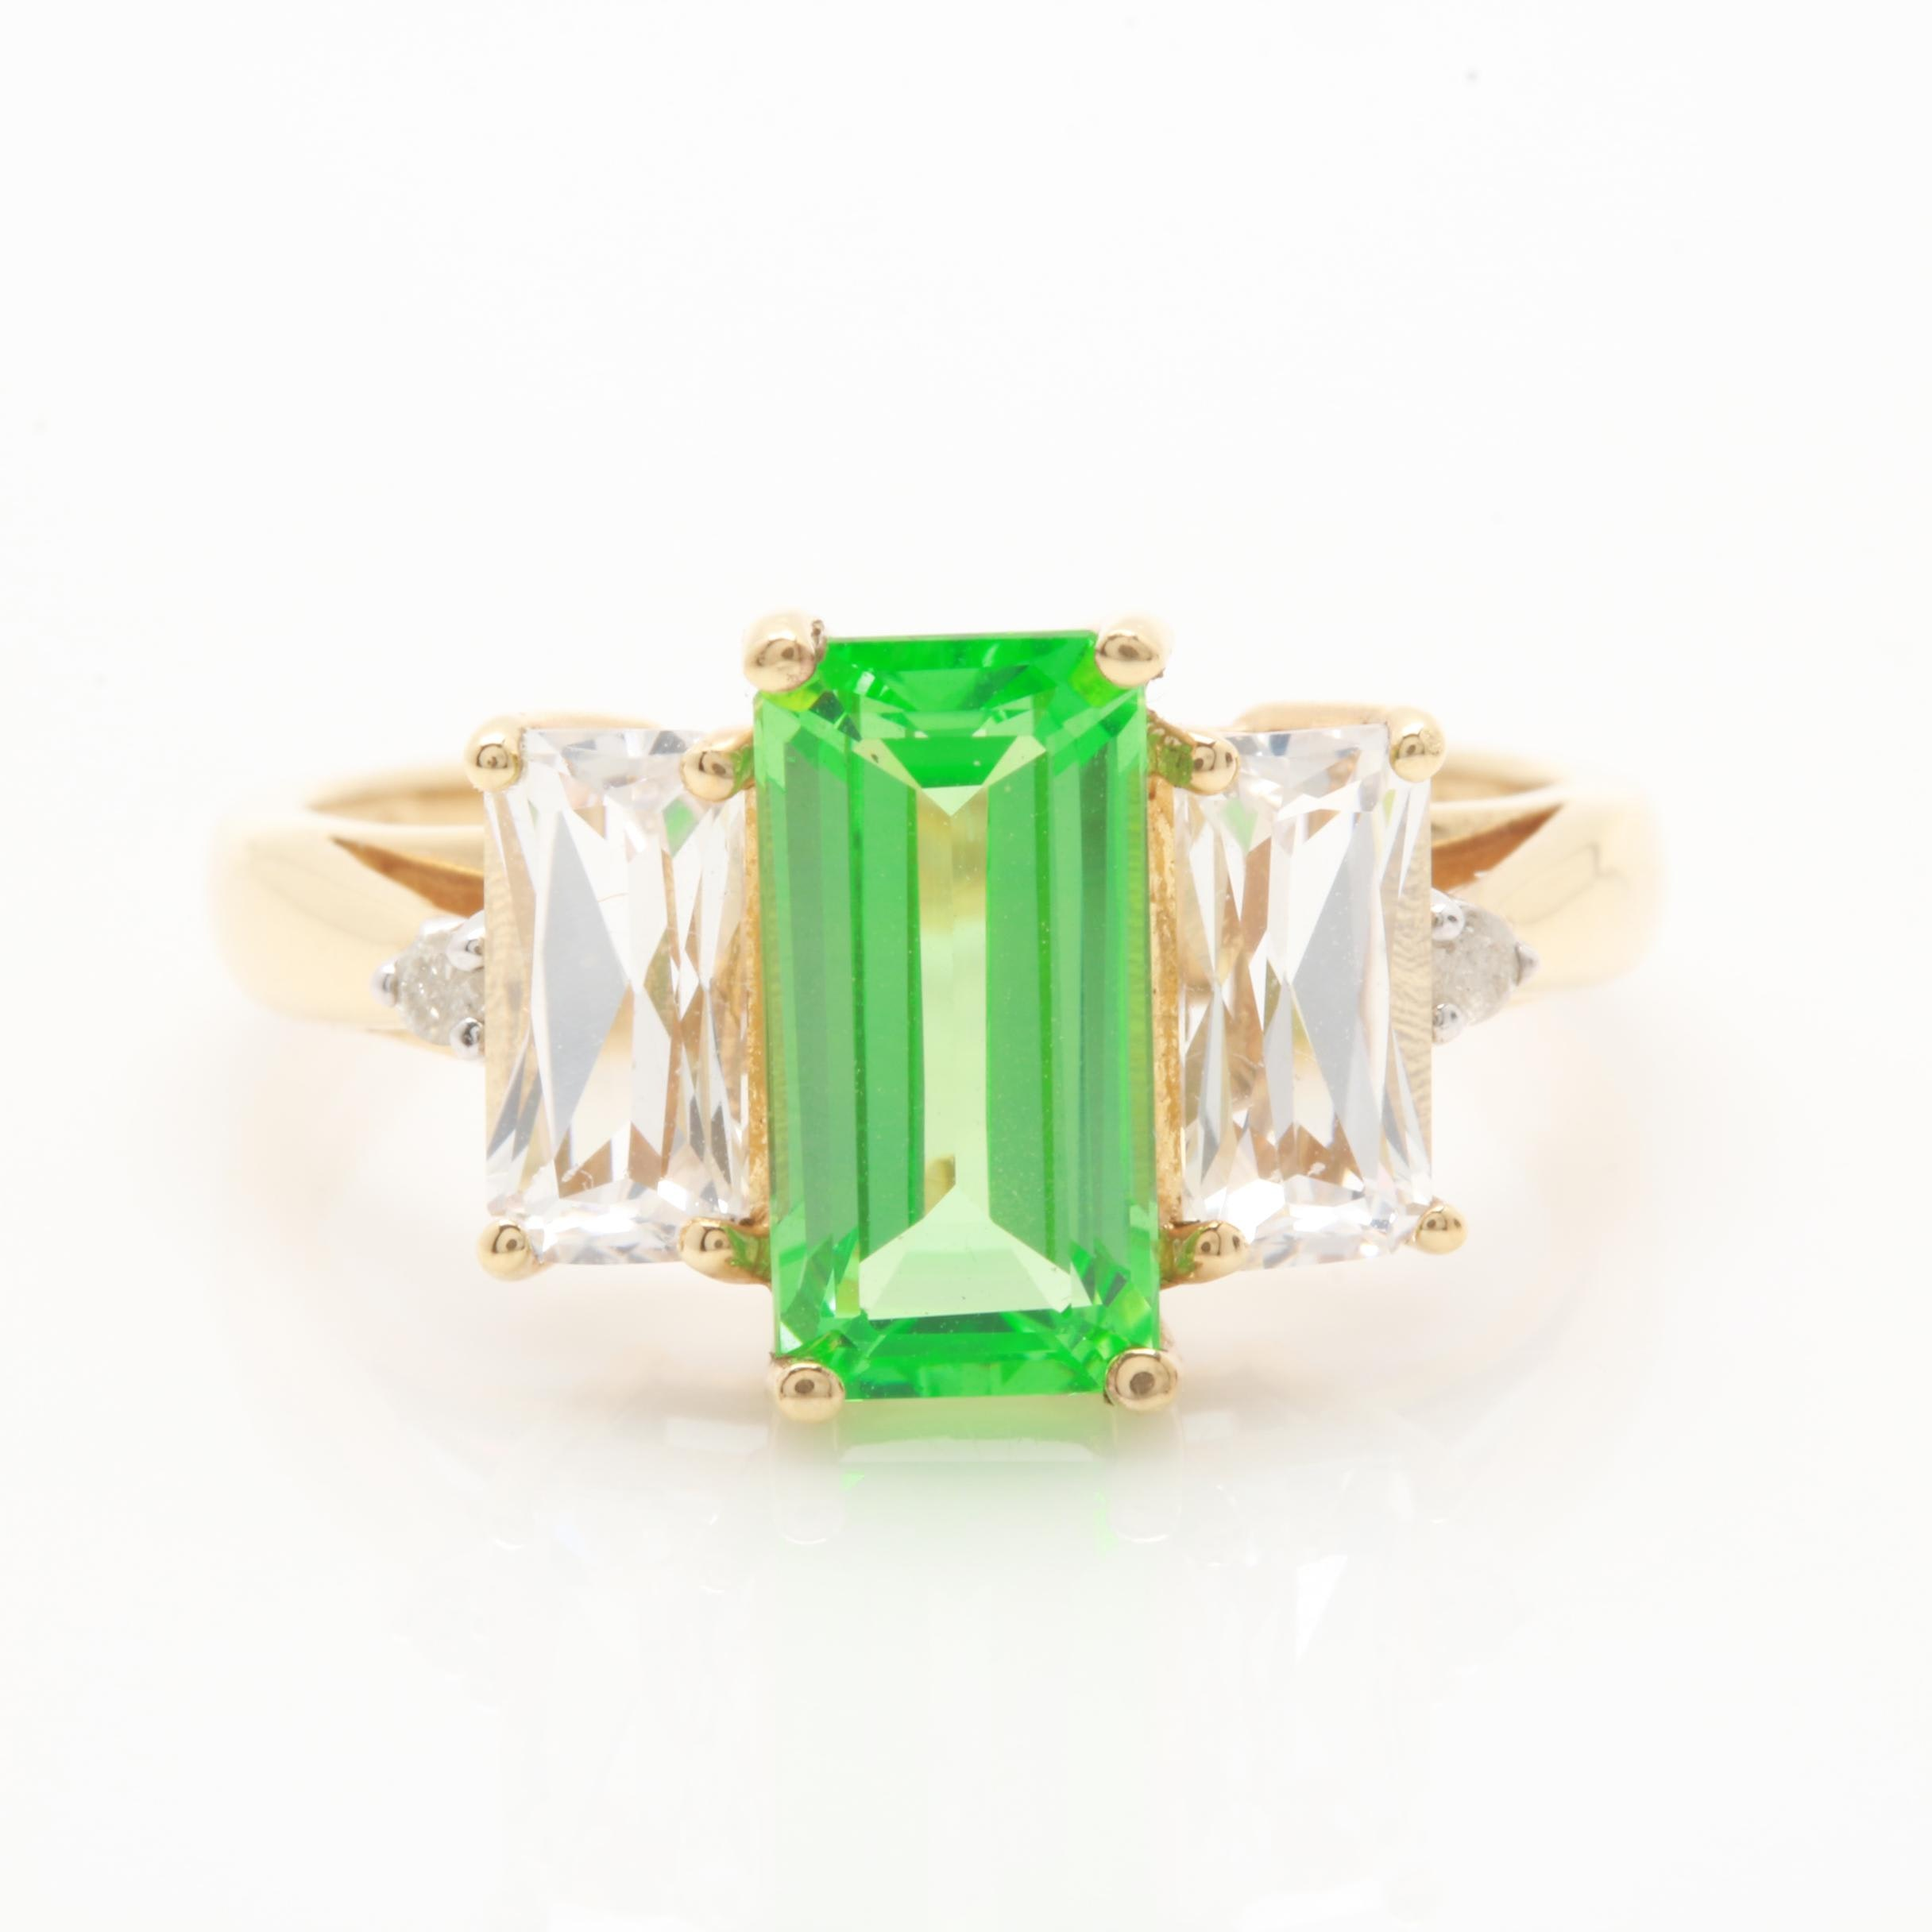 10K Yellow Gold Synthetic Green and White Sapphire Ring With Diamond Accents